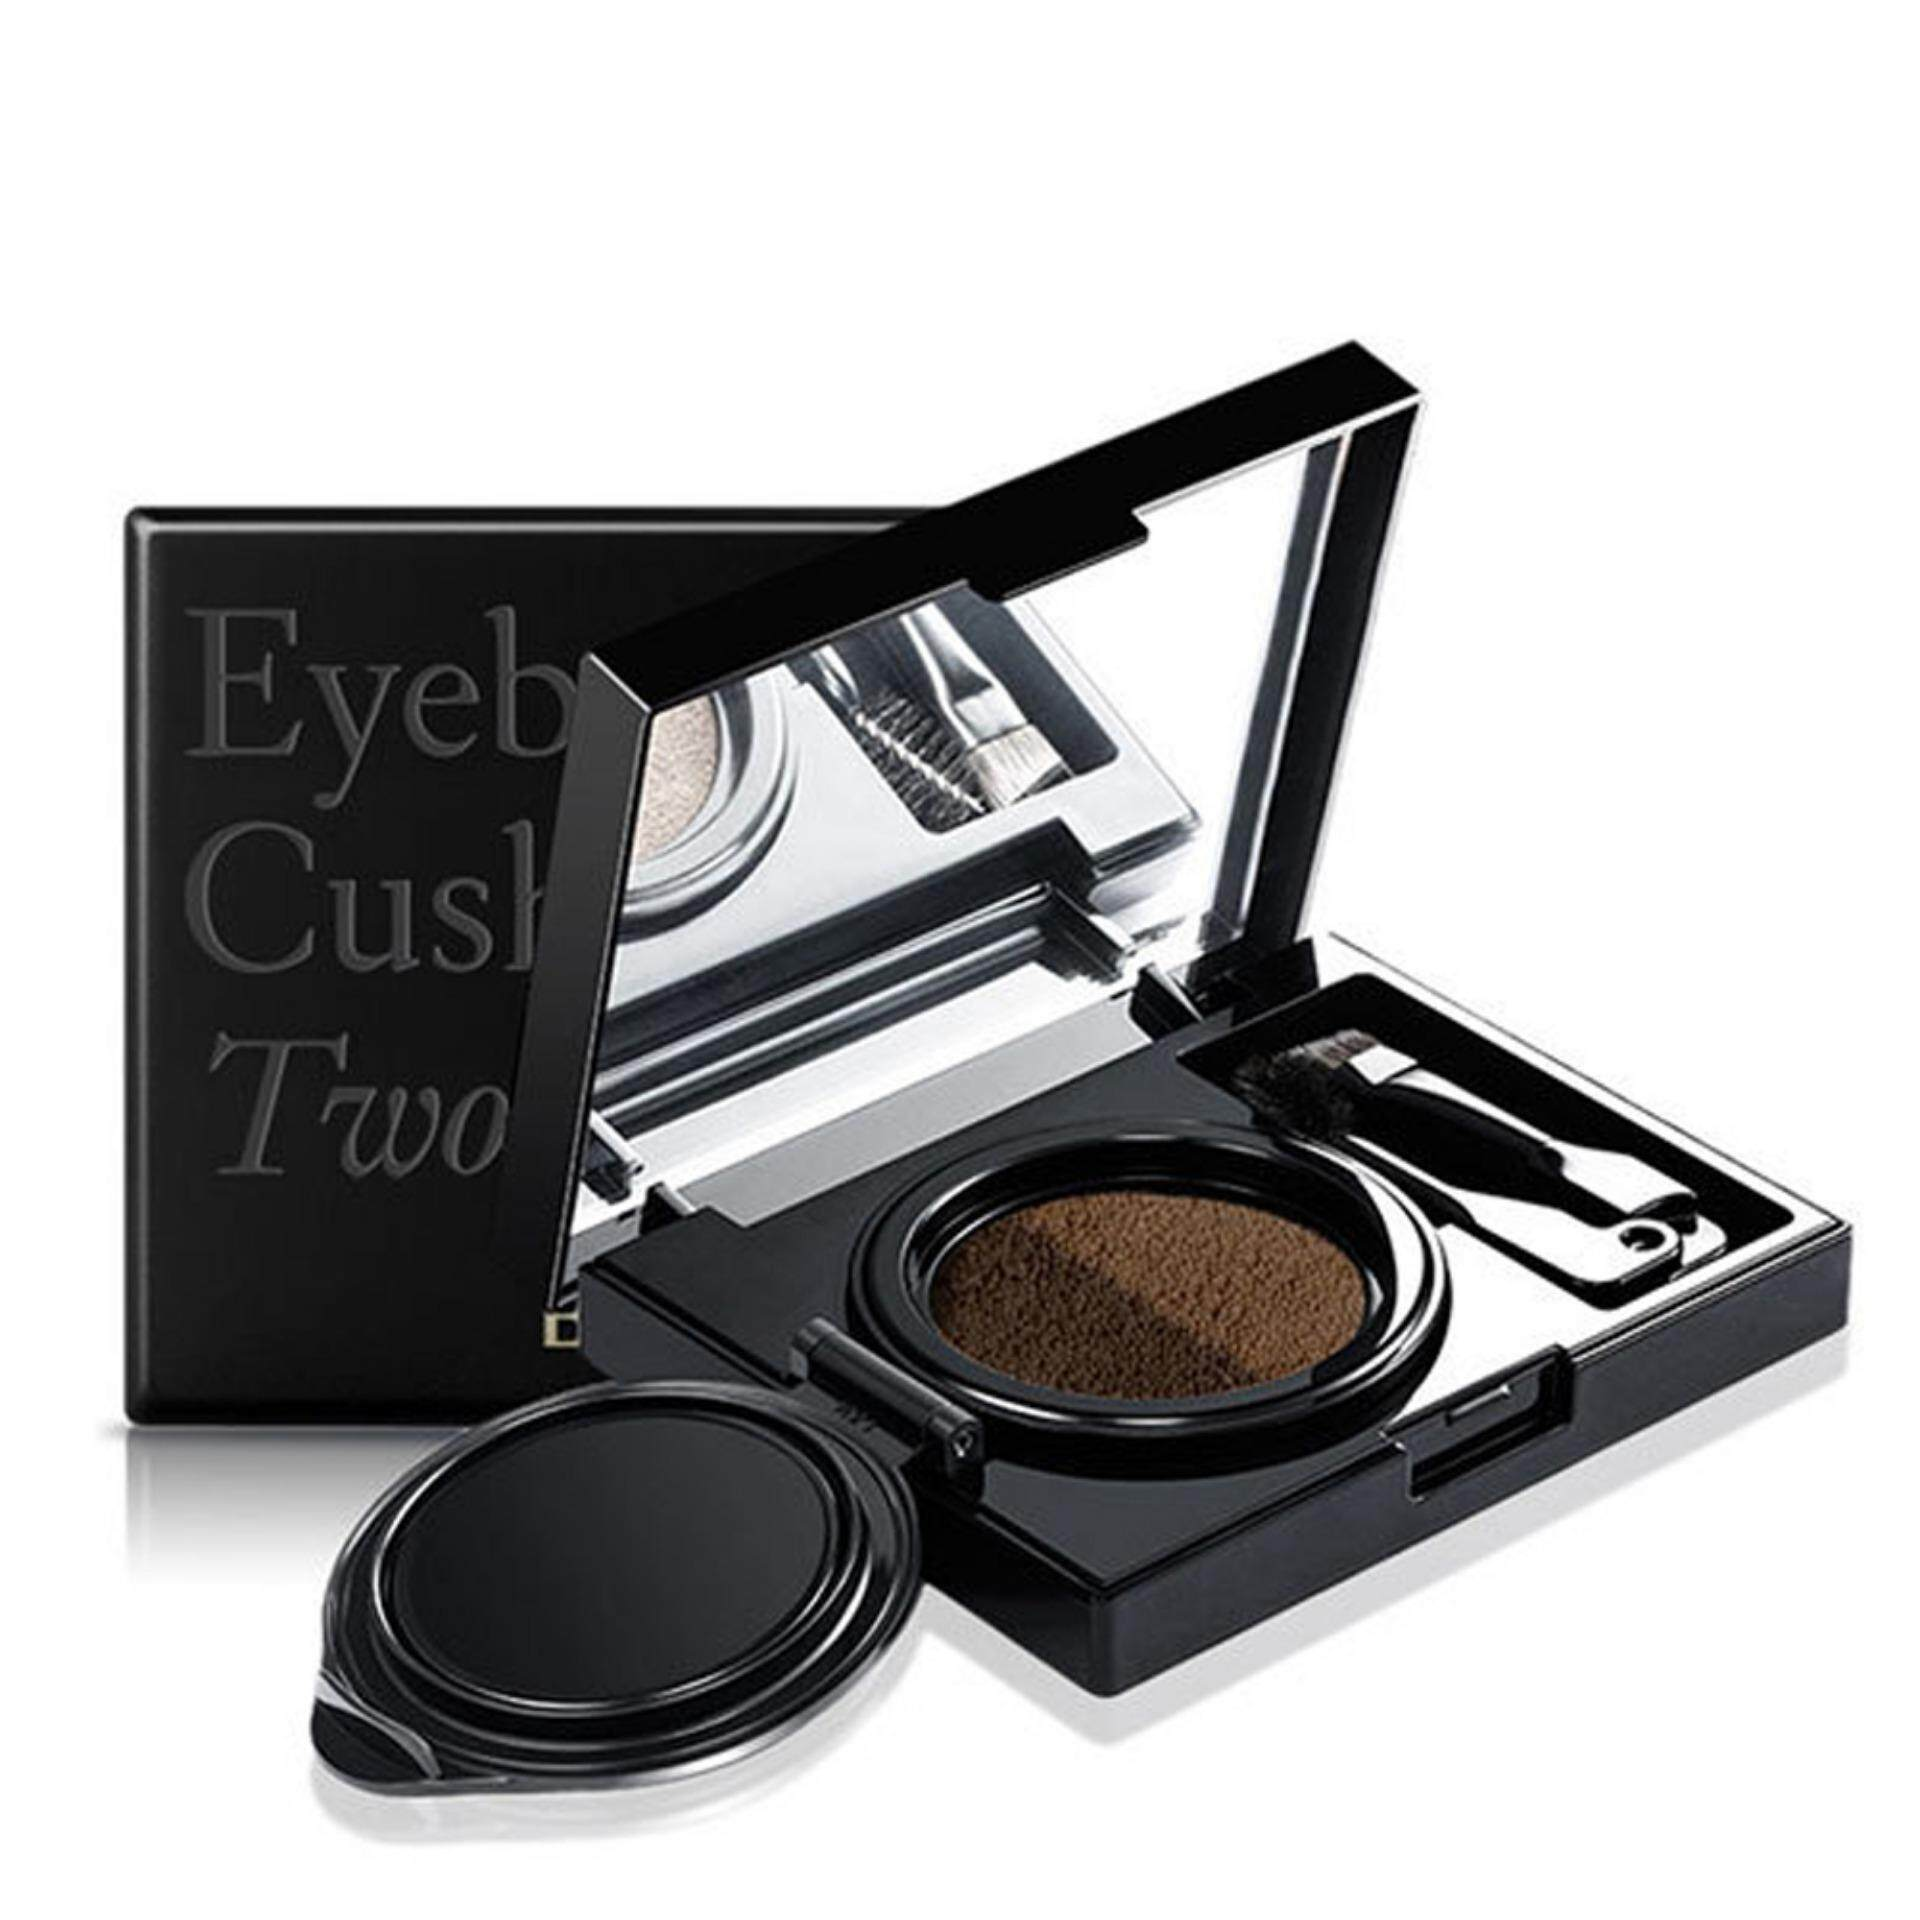 Features Novo Air Cushion Eyebrow Enhancer Waterproof Double Color Eyeshadow Two Tone Original Cosmetics Eyes Makeup With Mirror 6g